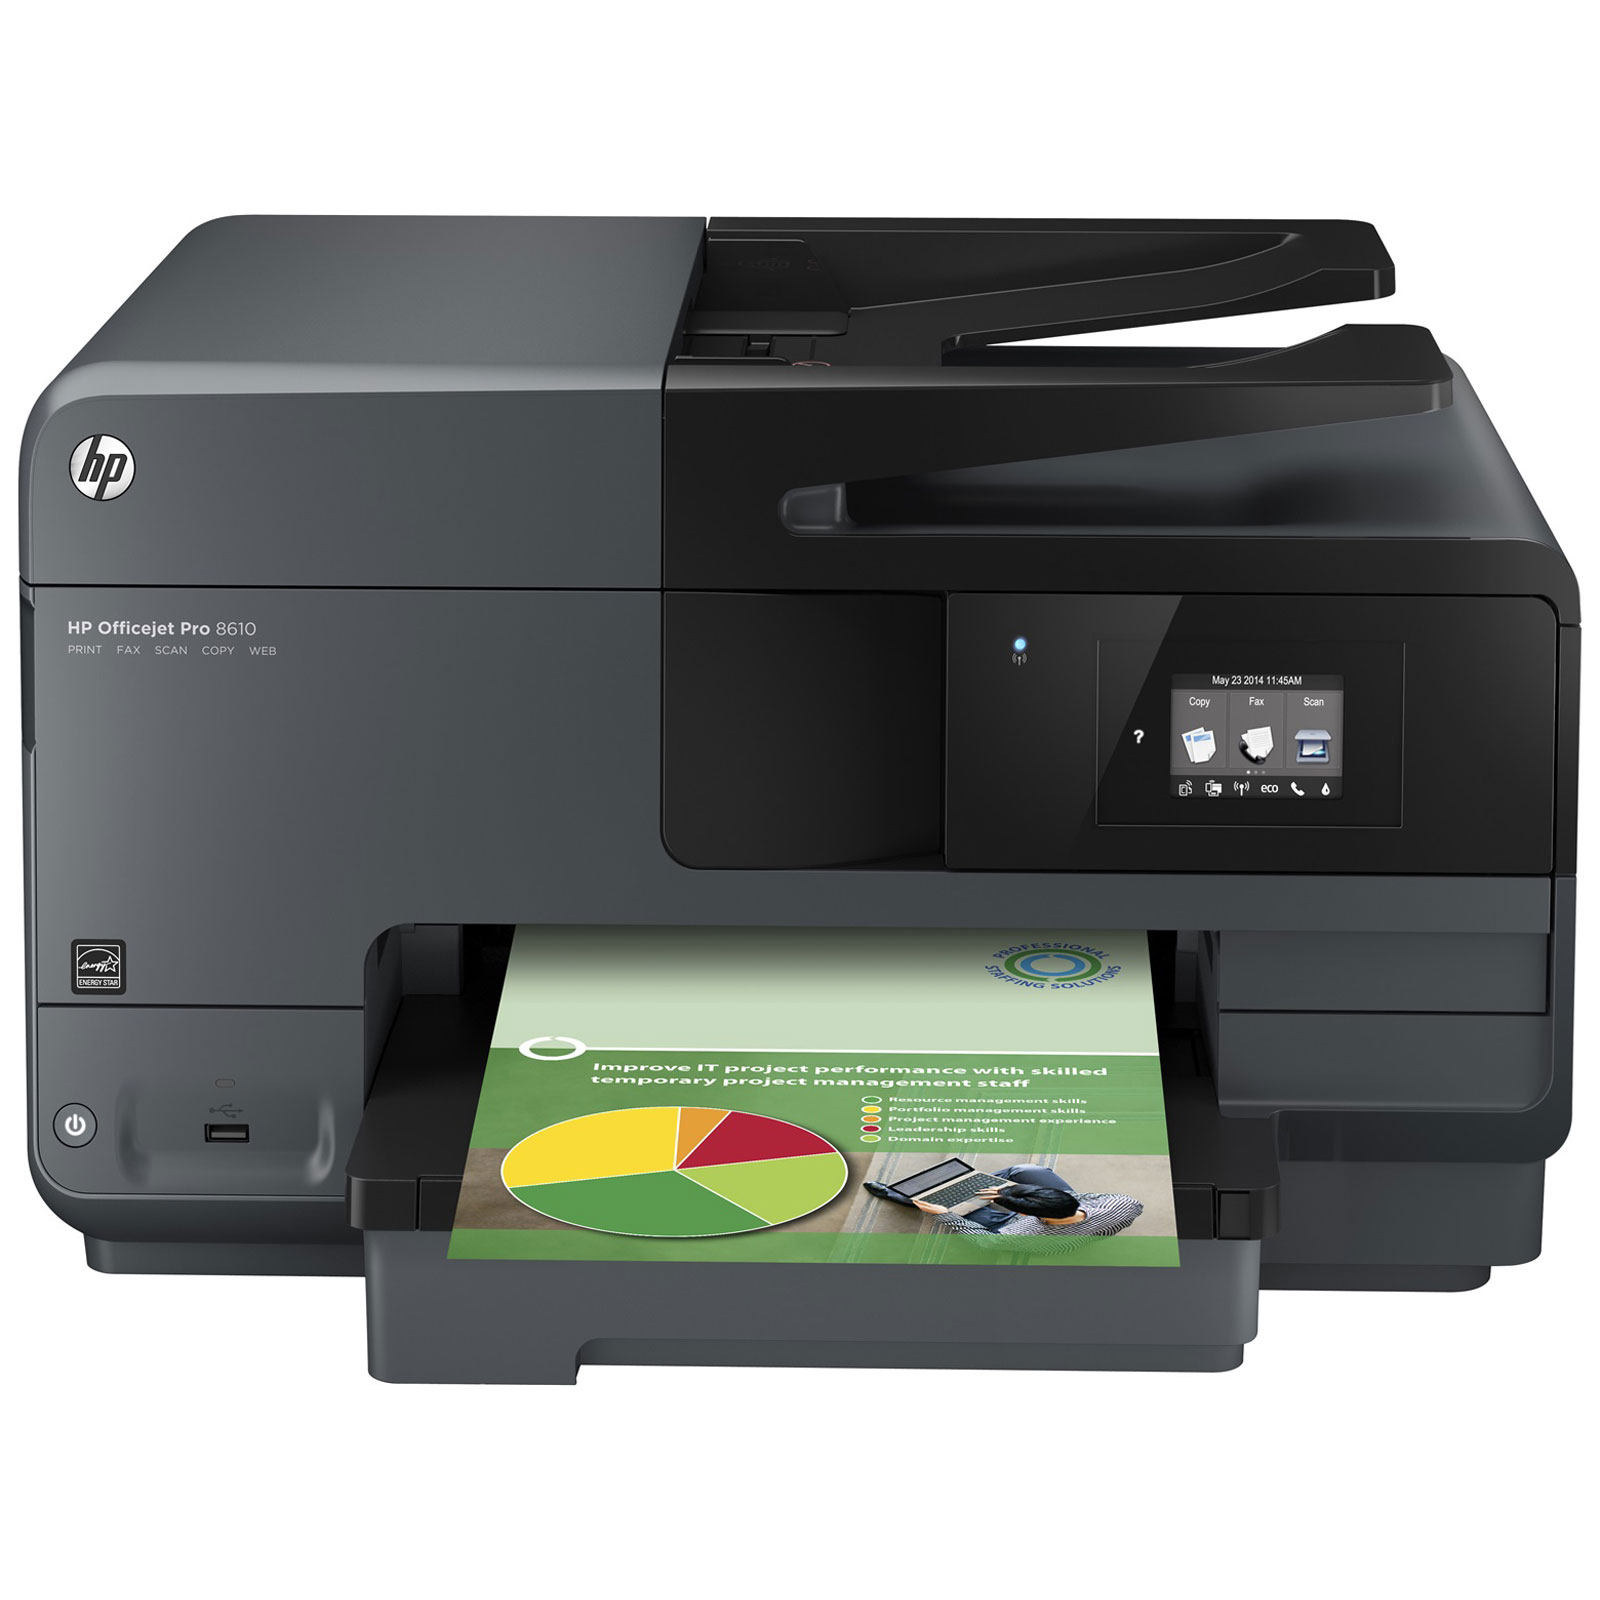 hp officejet pro 8610 imprimante multifonction hp sur ldlc. Black Bedroom Furniture Sets. Home Design Ideas